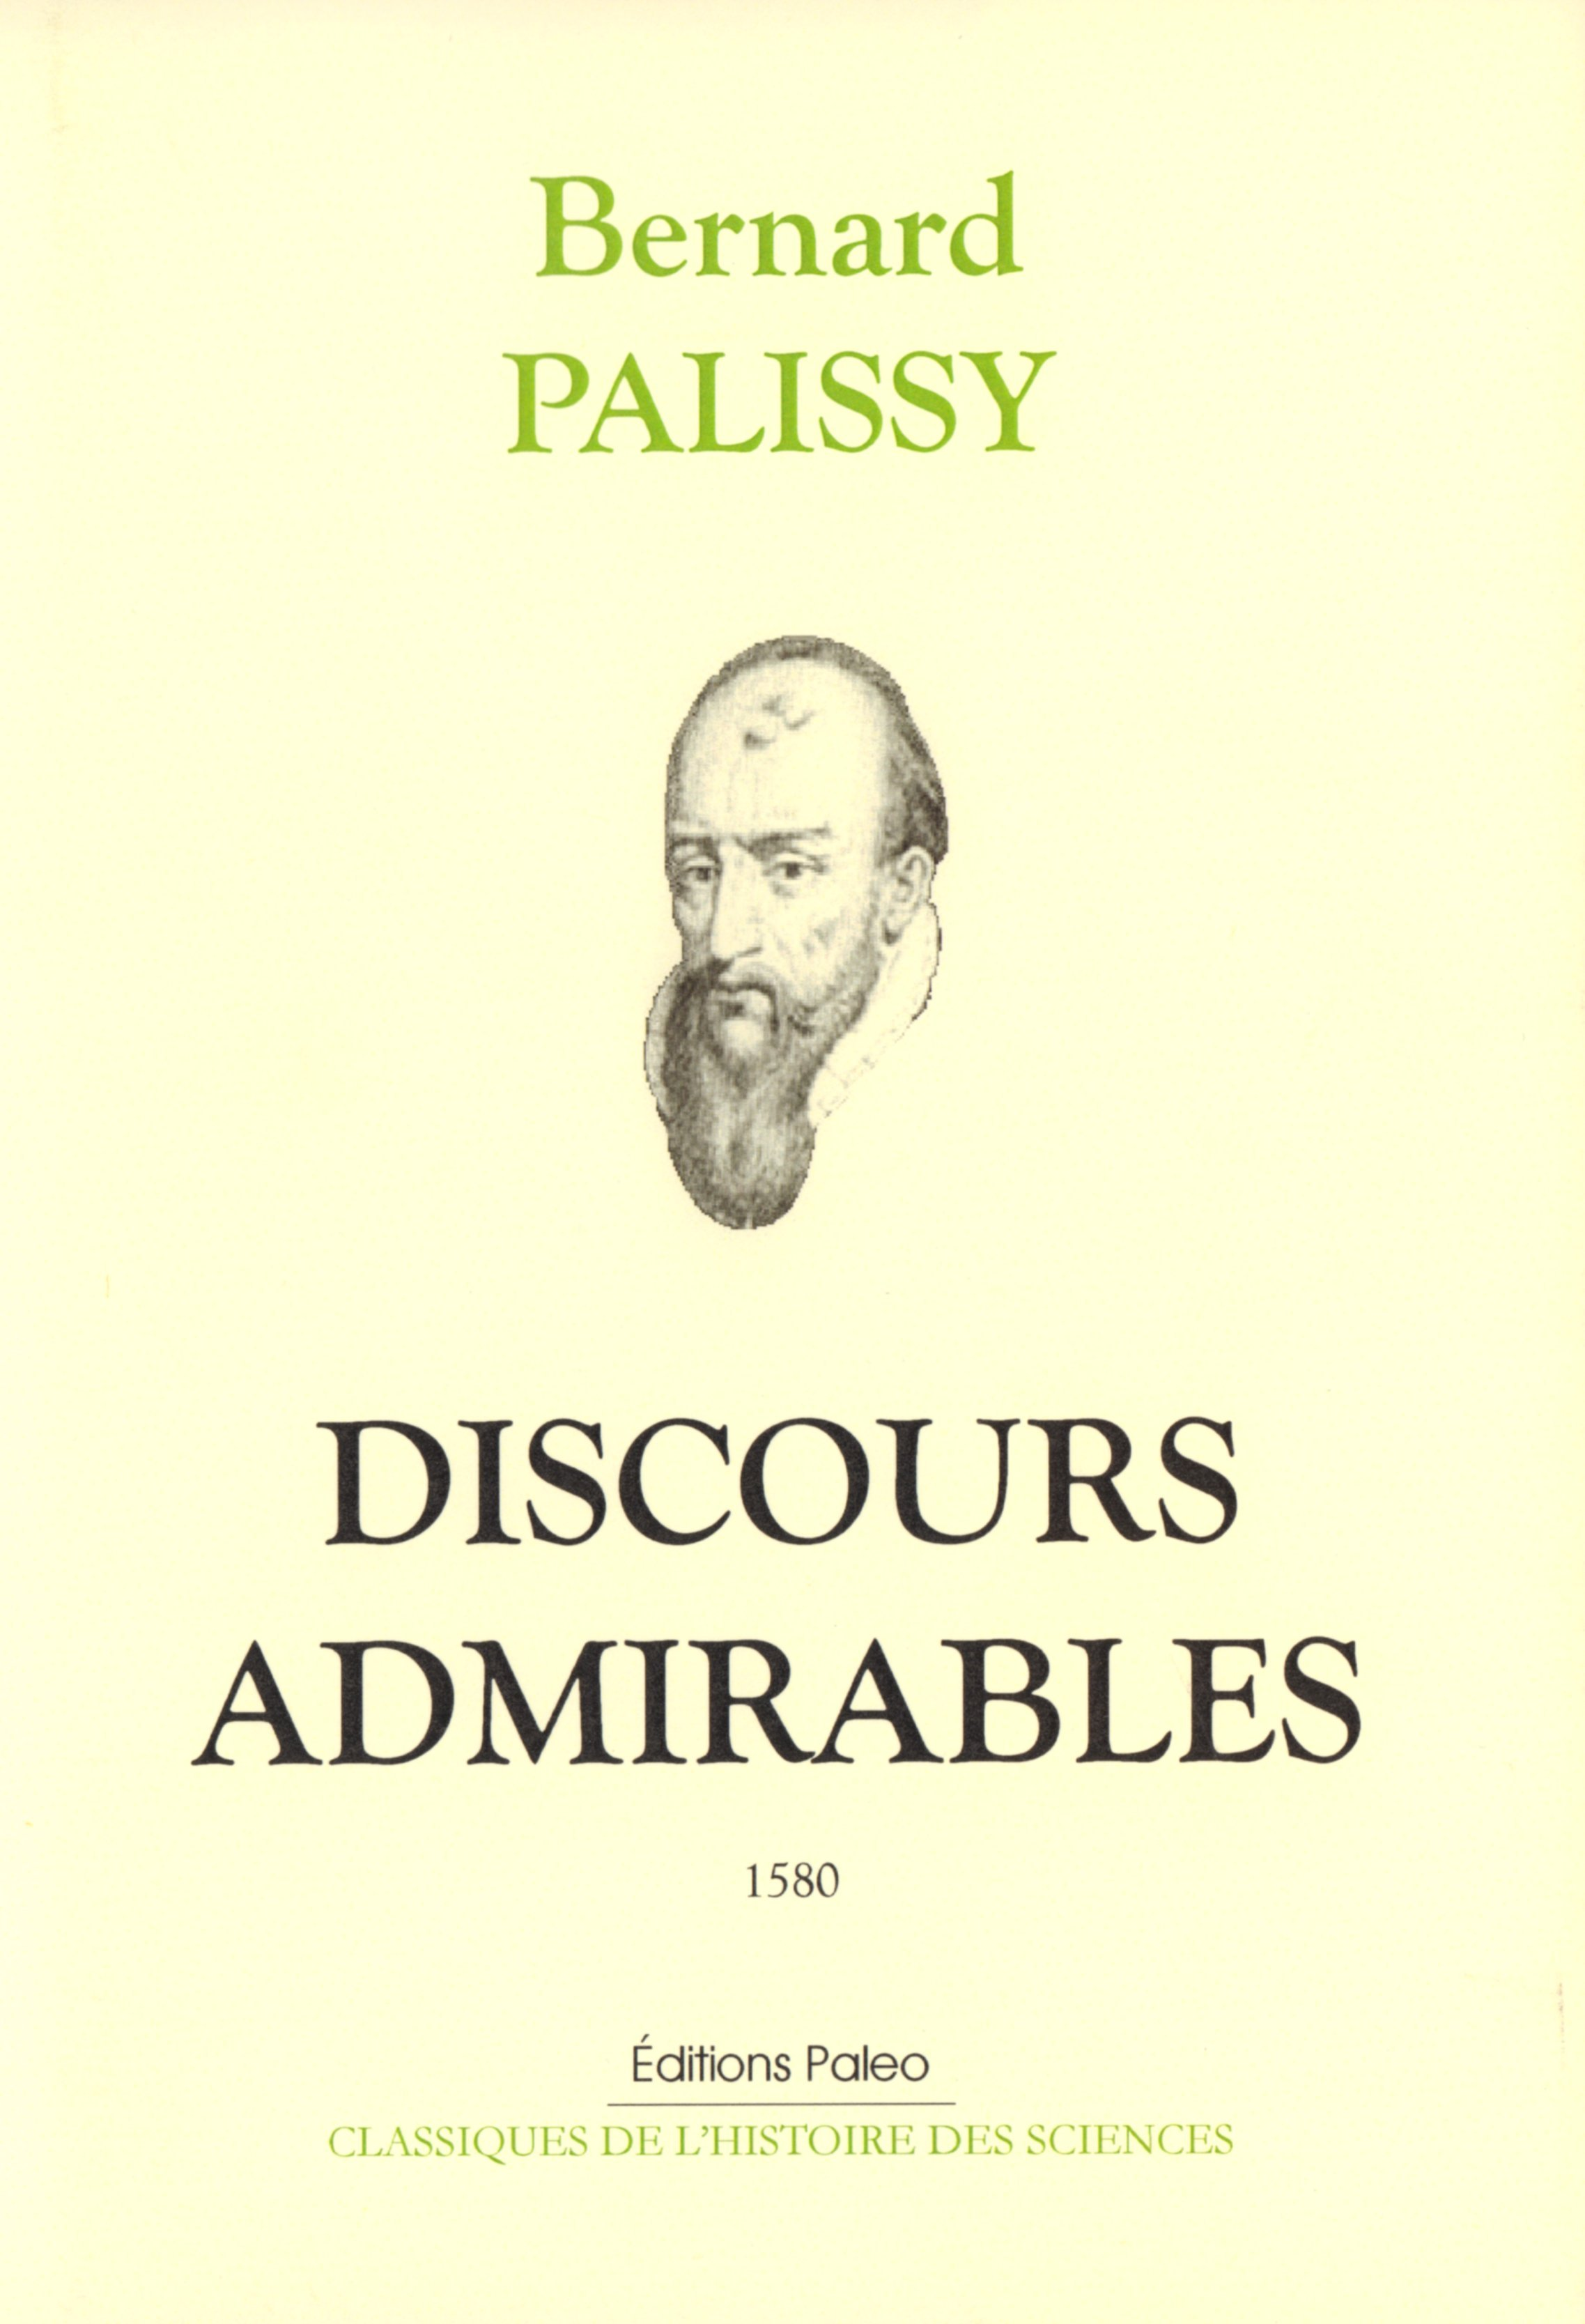 DISCOURS ADMIRABLES